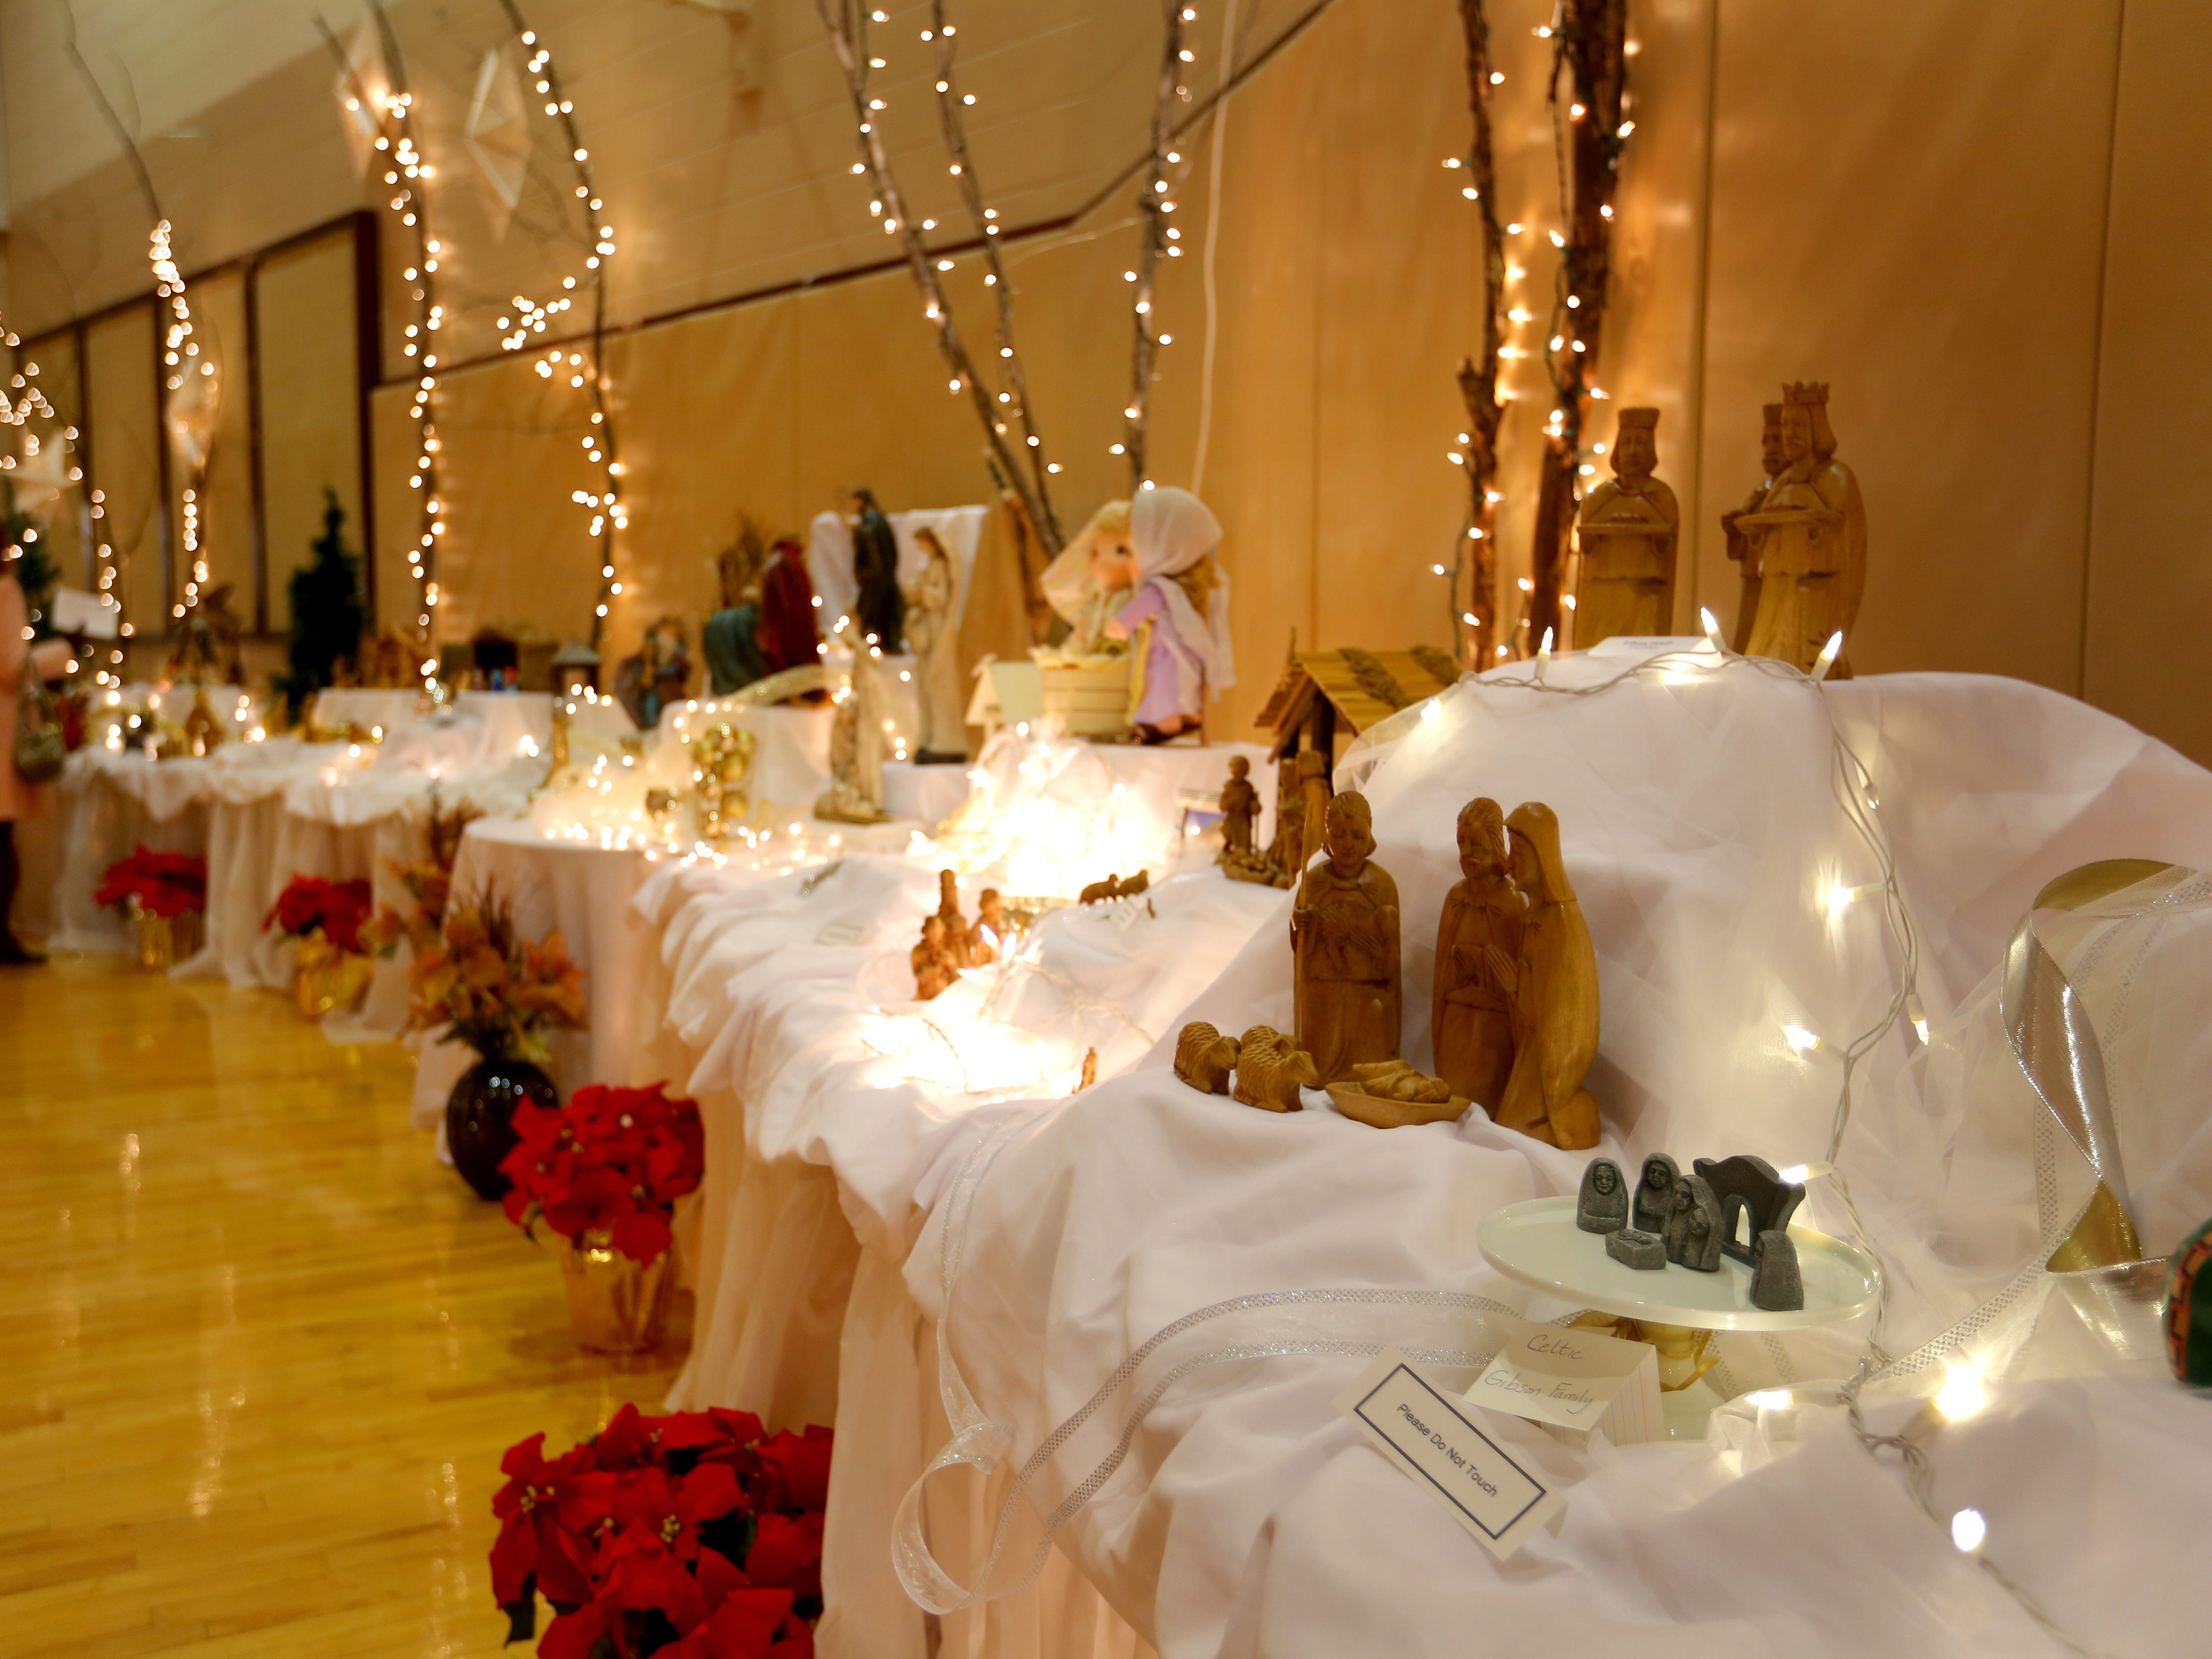 More than 300 nativities will be on display at the The Church of Jesus Christ of Latter-day Saints in Morristown Nov. 30 to Dec. 2, 2018.